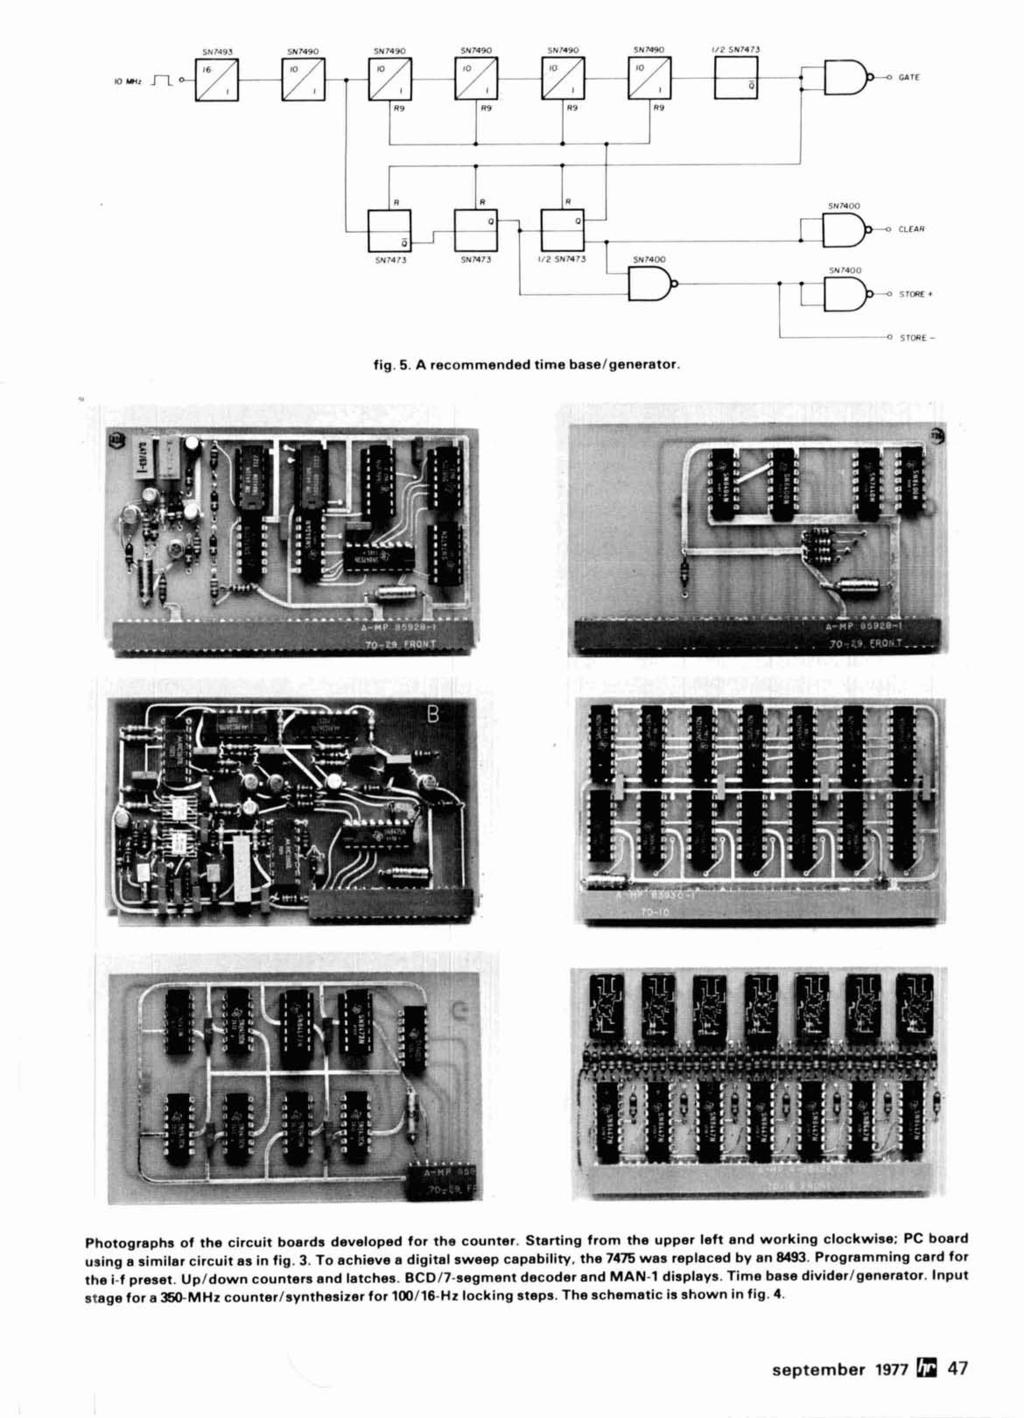 Radio September 1977 Frequency Synthesizer 44 Pi Network Design Adjustable Timer Circuit With 555 Ic P Marian Timers A Recommended Time Baselgenerator Photographs Of